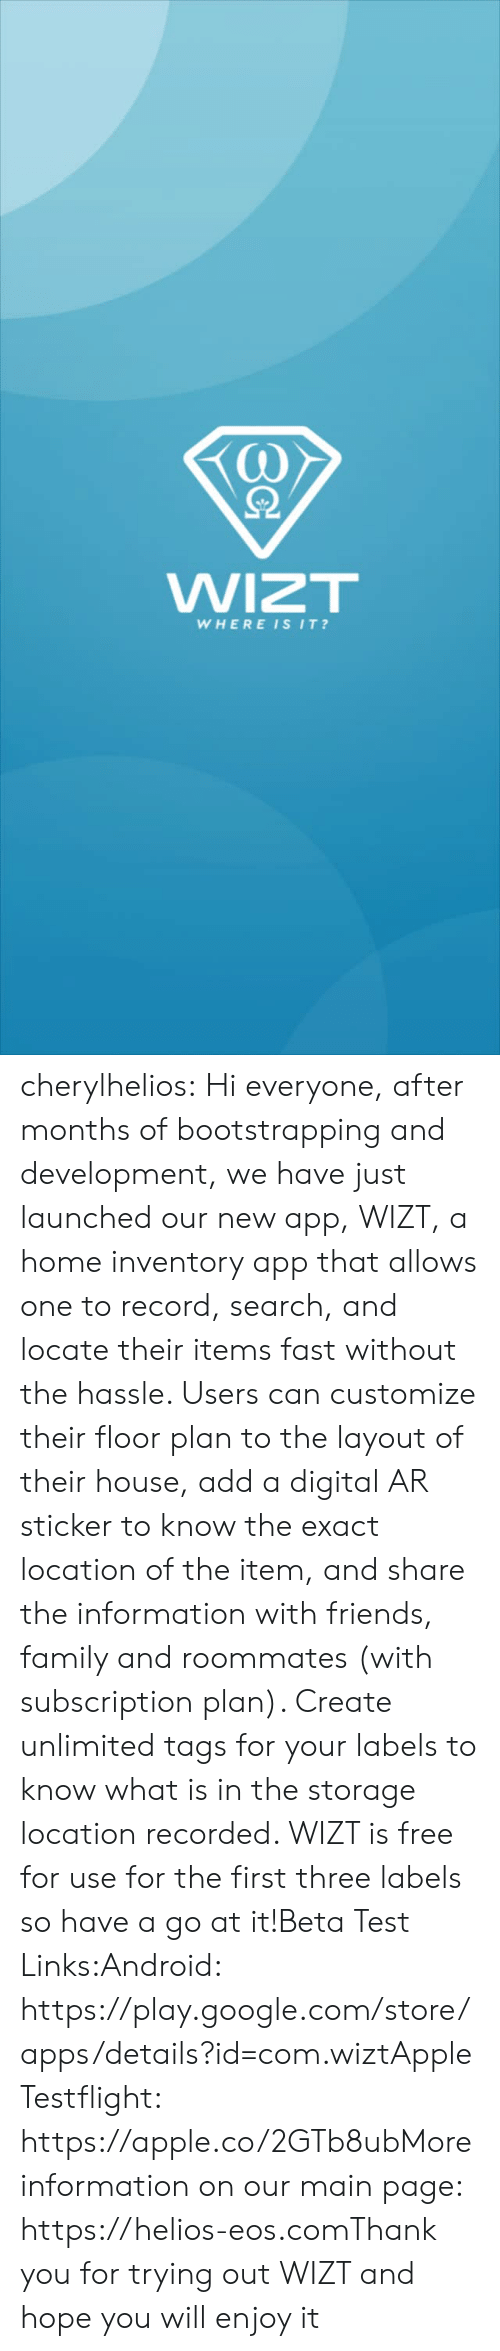 google.com: WIZT  WHEREISIT? cherylhelios:  Hi everyone, after months of bootstrapping and development, we have just launched our new app, WIZT, a home inventory app that allows one to record, search, and locate their items fast without the hassle. Users can customize their floor plan to the layout of their house, add a digital AR sticker to know the exact location of the item, and share the information with friends, family and roommates (with subscription plan). Create unlimited tags for your labels to know what is in the storage location recorded. WIZT is free for use for the first three labels so have a go at it!Beta Test Links:Android: https://play.google.com/store/apps/details?id=com.wiztApple Testflight: https://apple.co/2GTb8ubMore information on our main page: https://helios-eos.comThank you for trying out WIZT and hope you will enjoy it